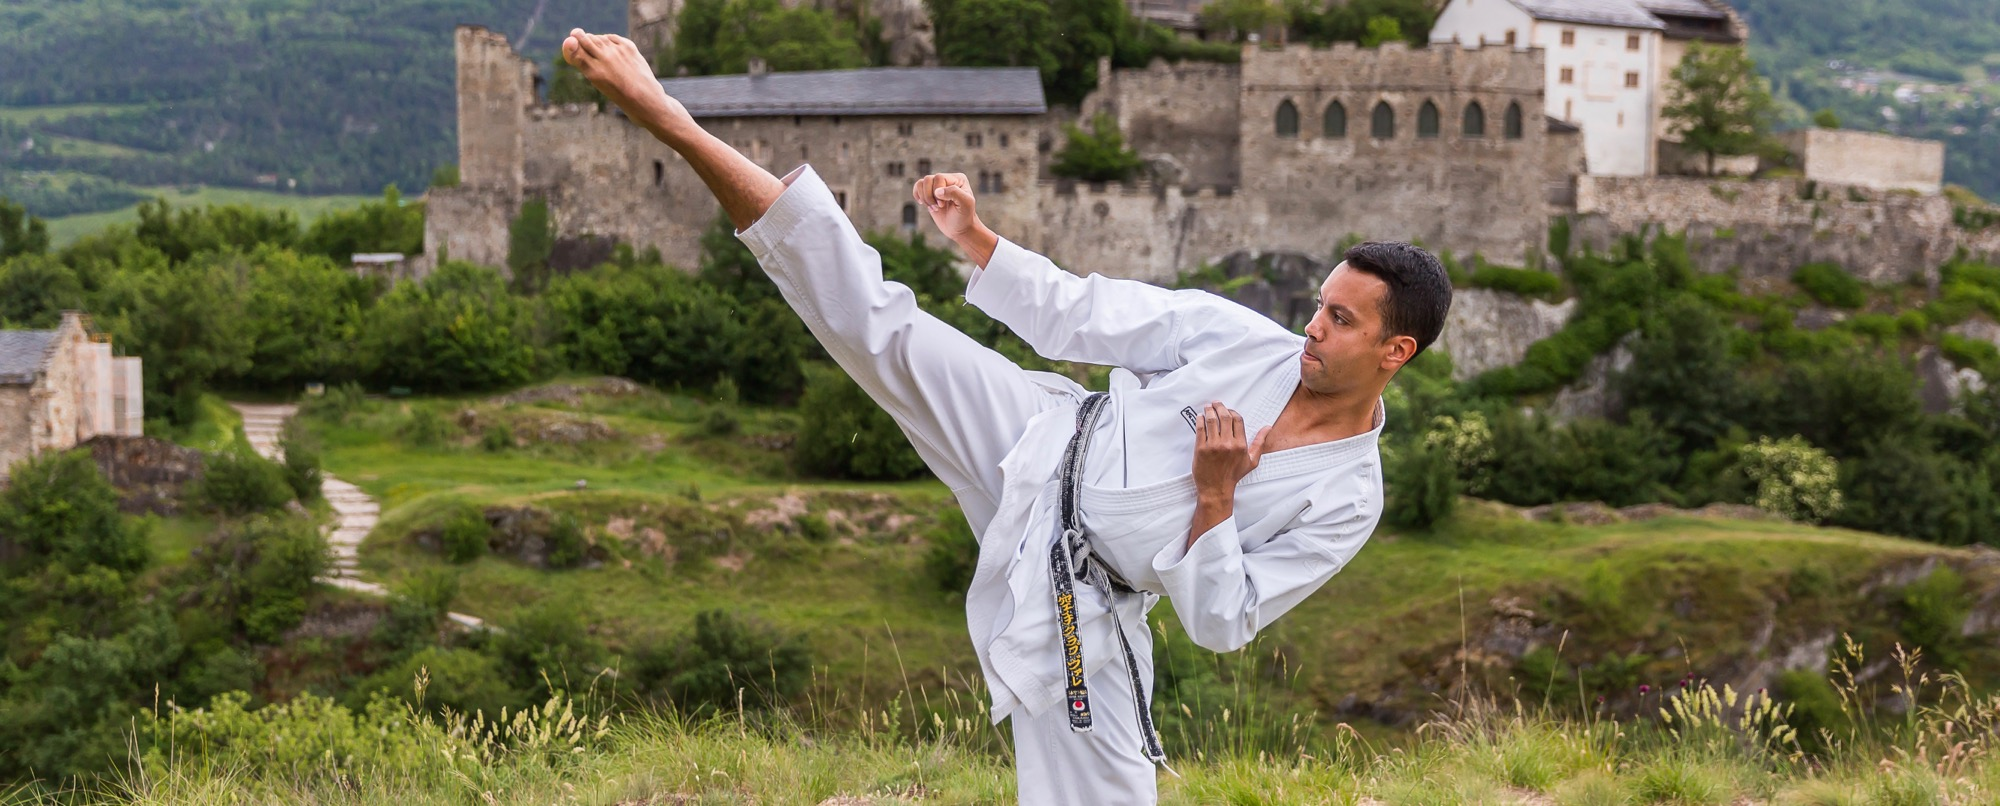 Hugues Michaud 5e Dan Karate Club Valais Sion Suisse Switzerland